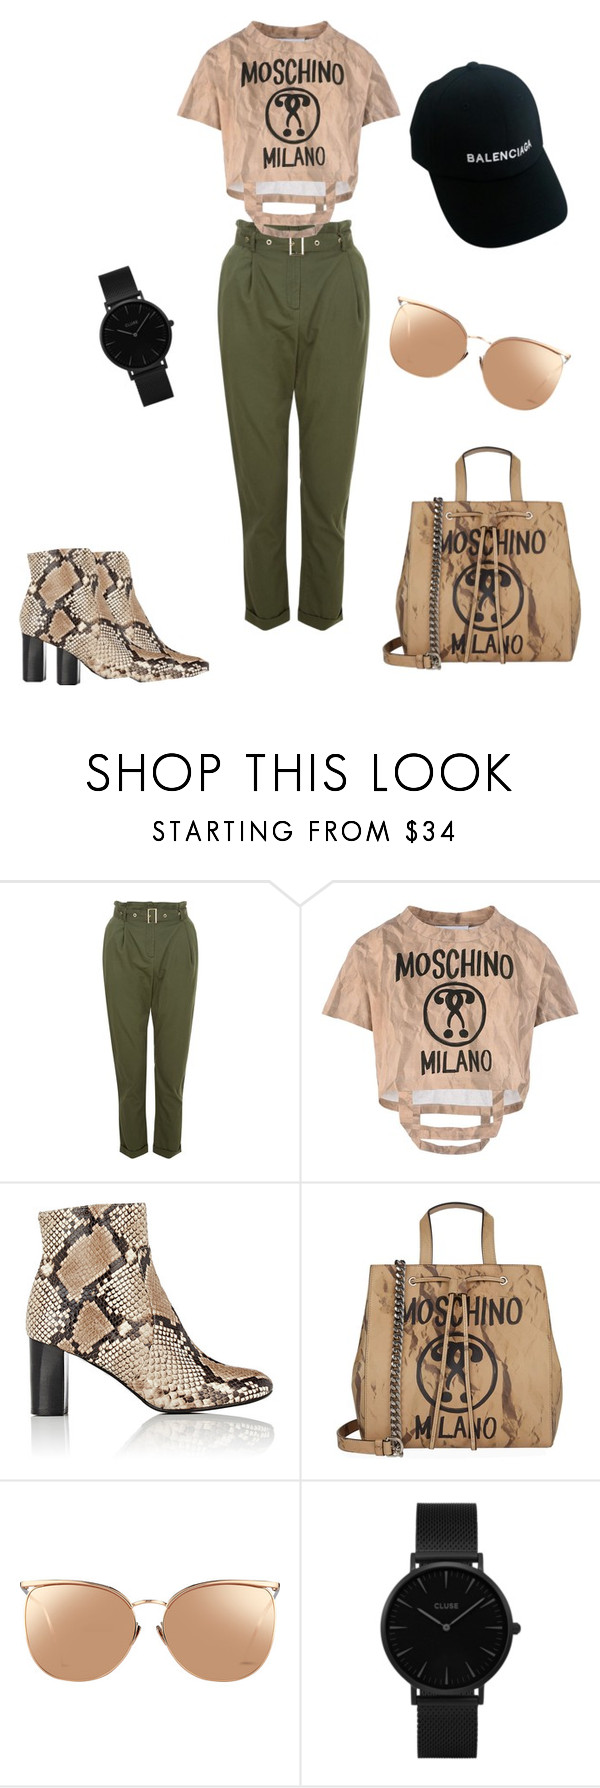 """Untitled #26"" by jaycavalli ❤ liked on Polyvore featuring Moschino, Barneys New York, Linda Farrow, CLUSE and Balenciaga"